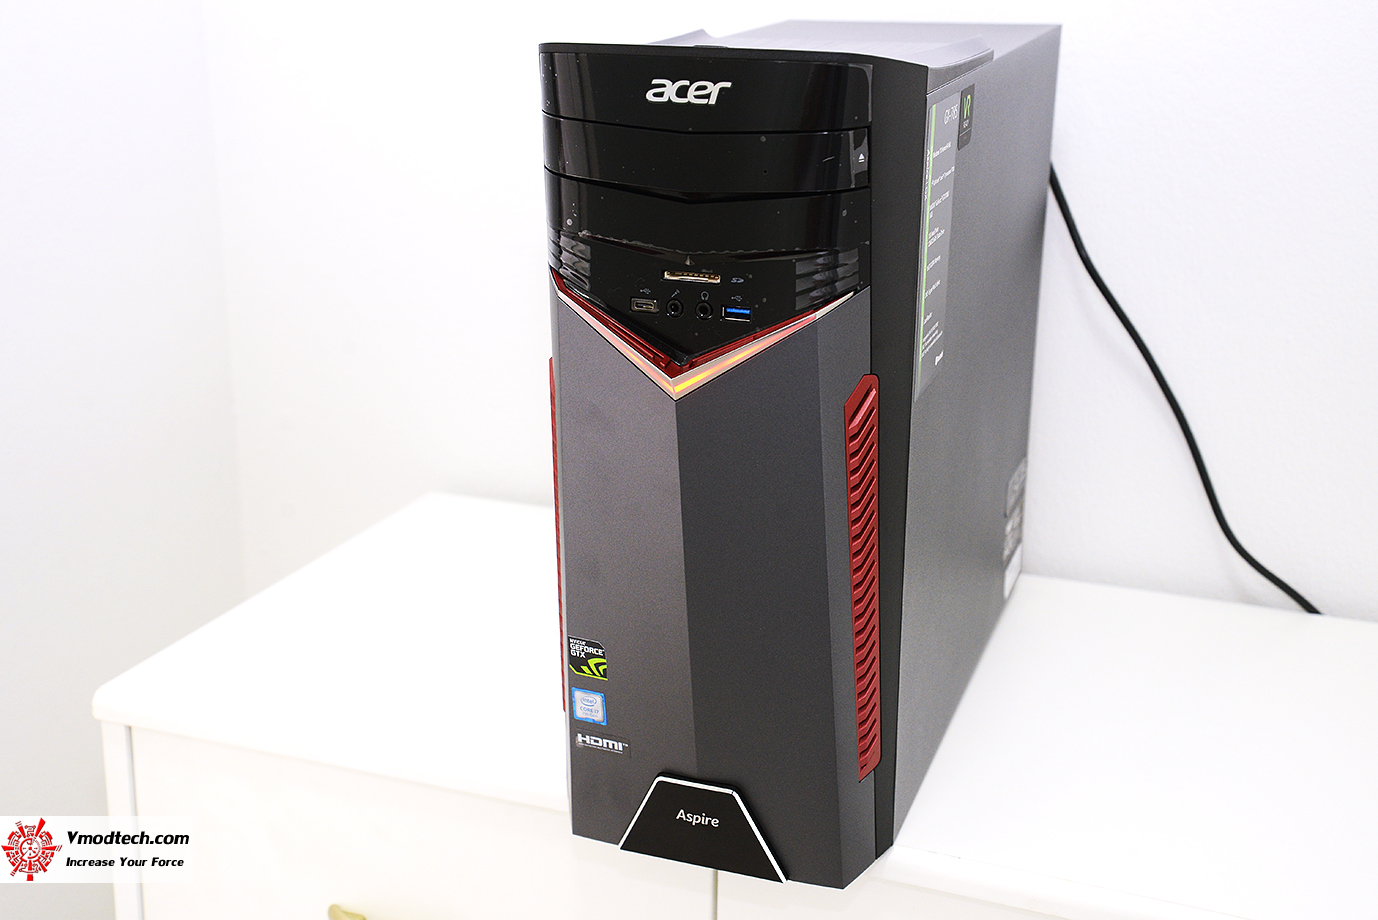 dsc 7881 Acer Aspire GX 785 Review